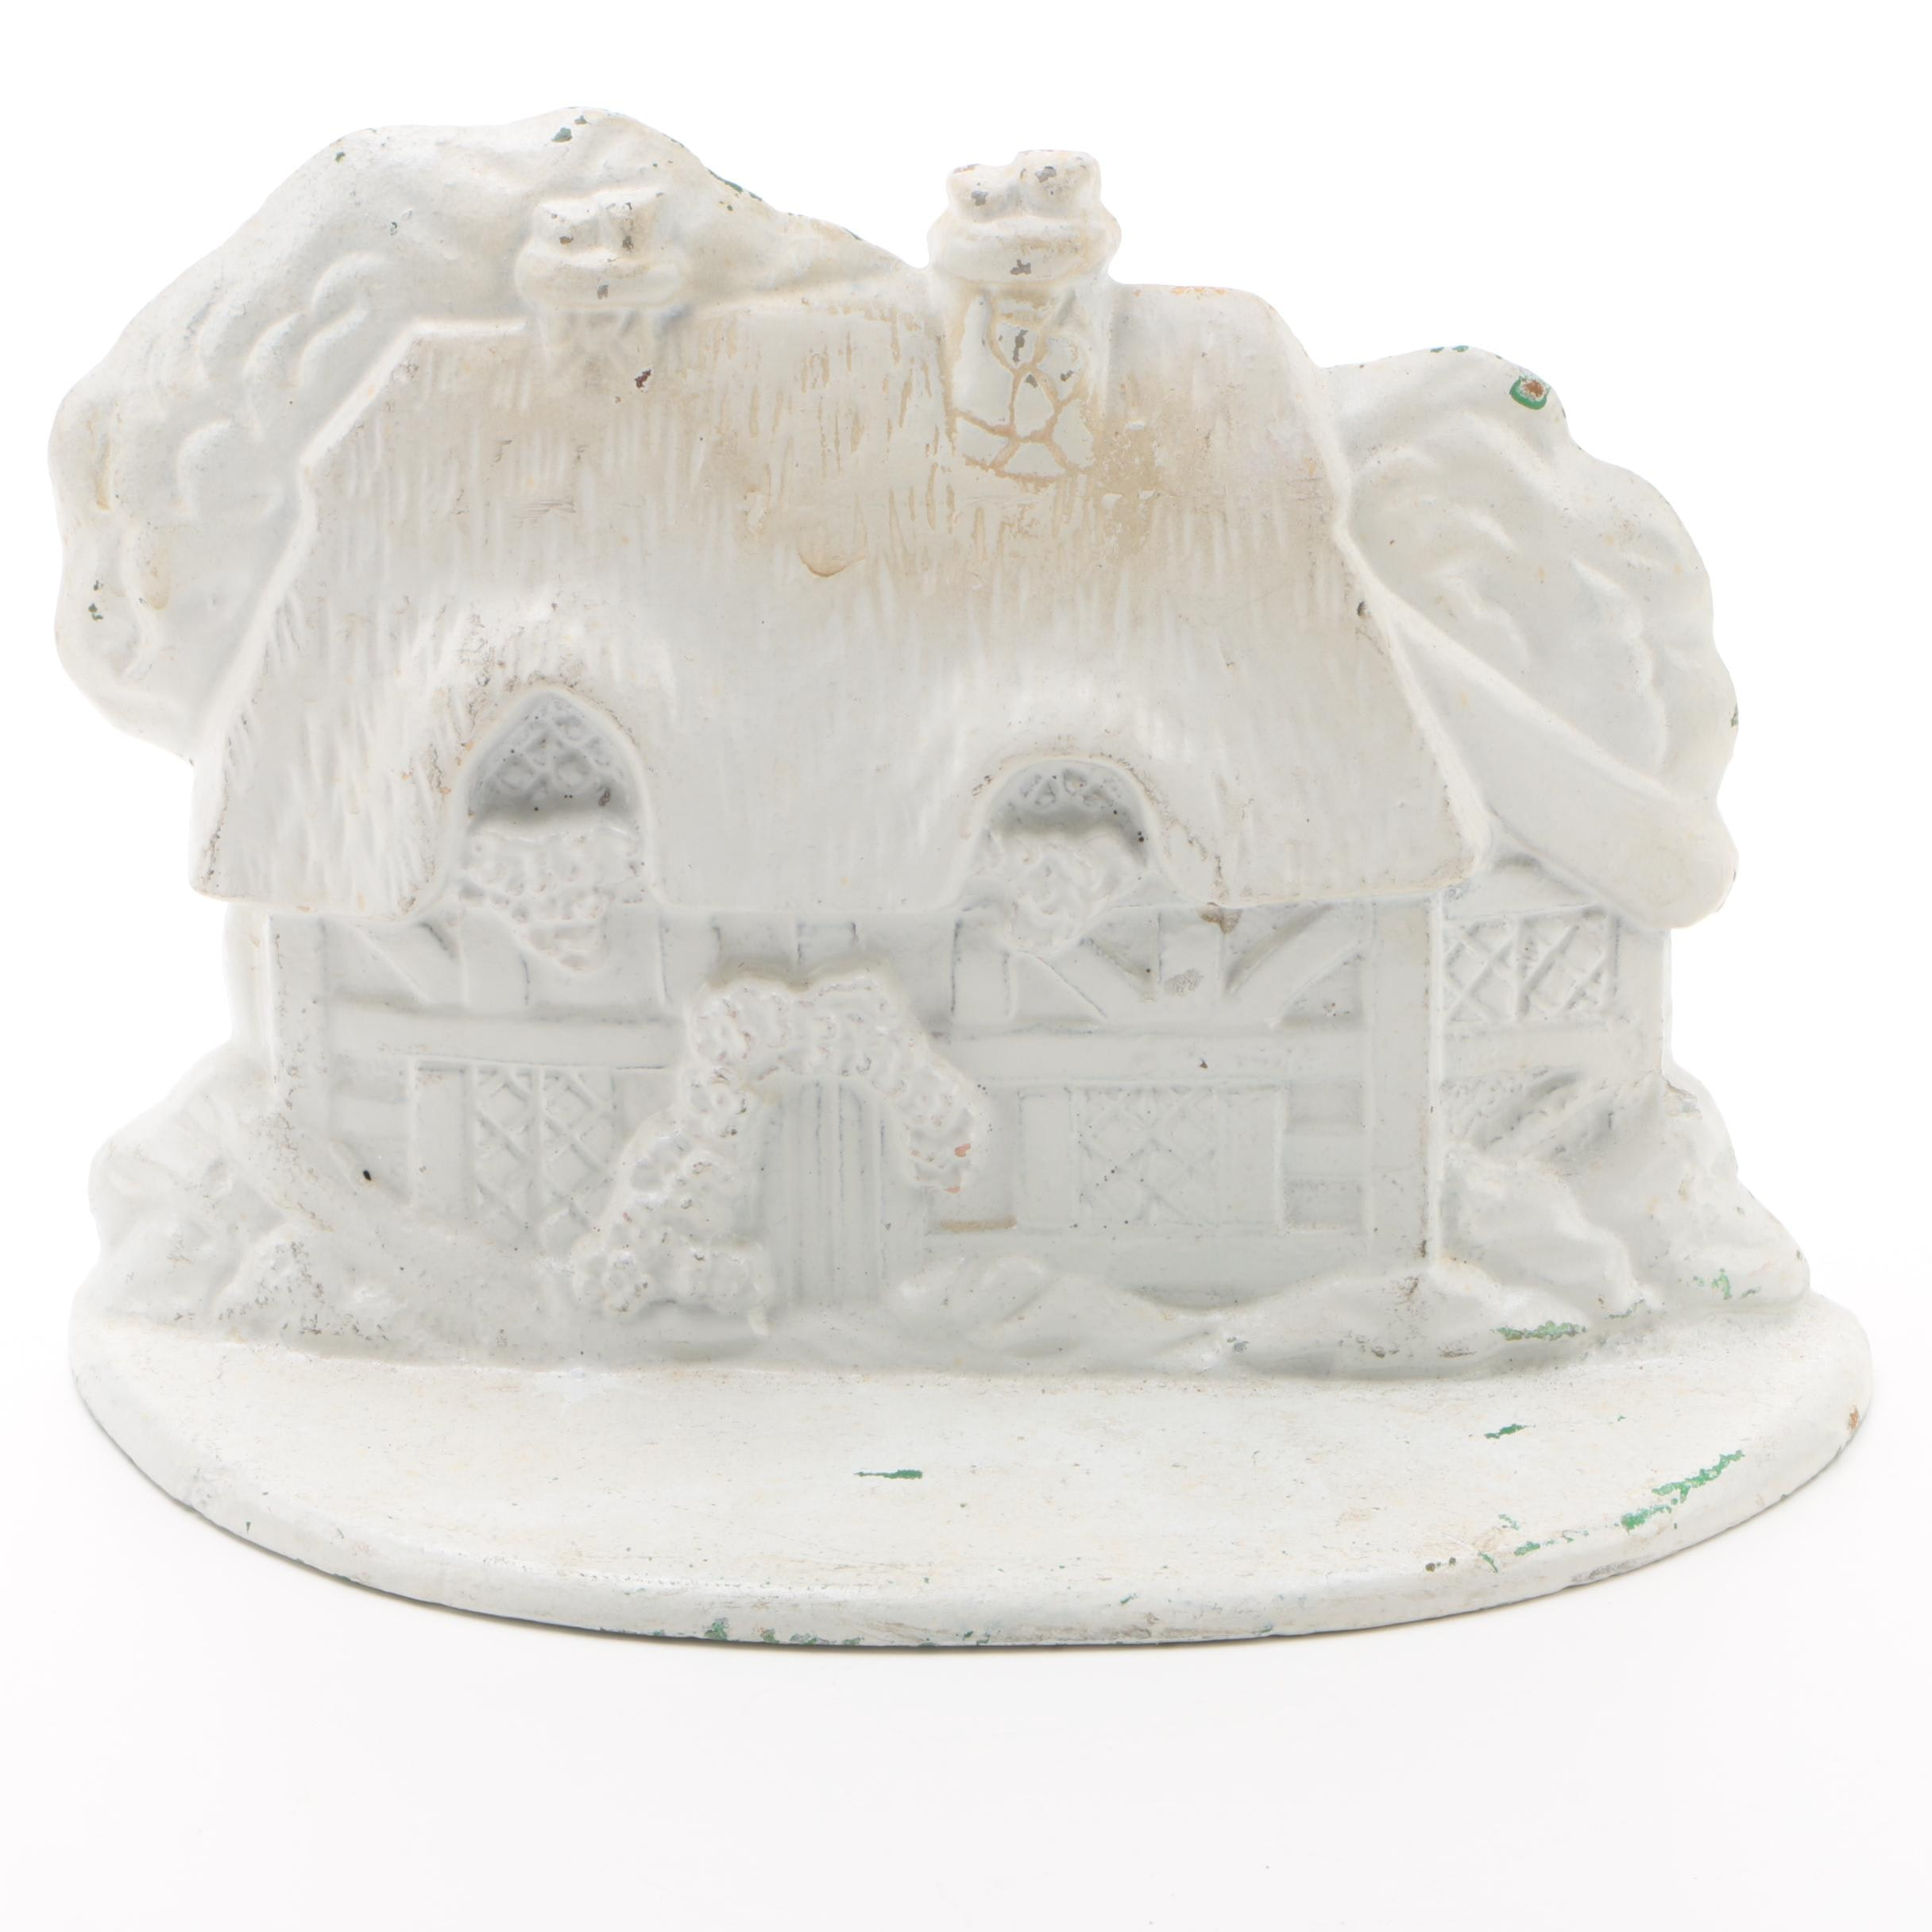 Midwest Importers White Cast Iron Thatched Cottage Doorstop